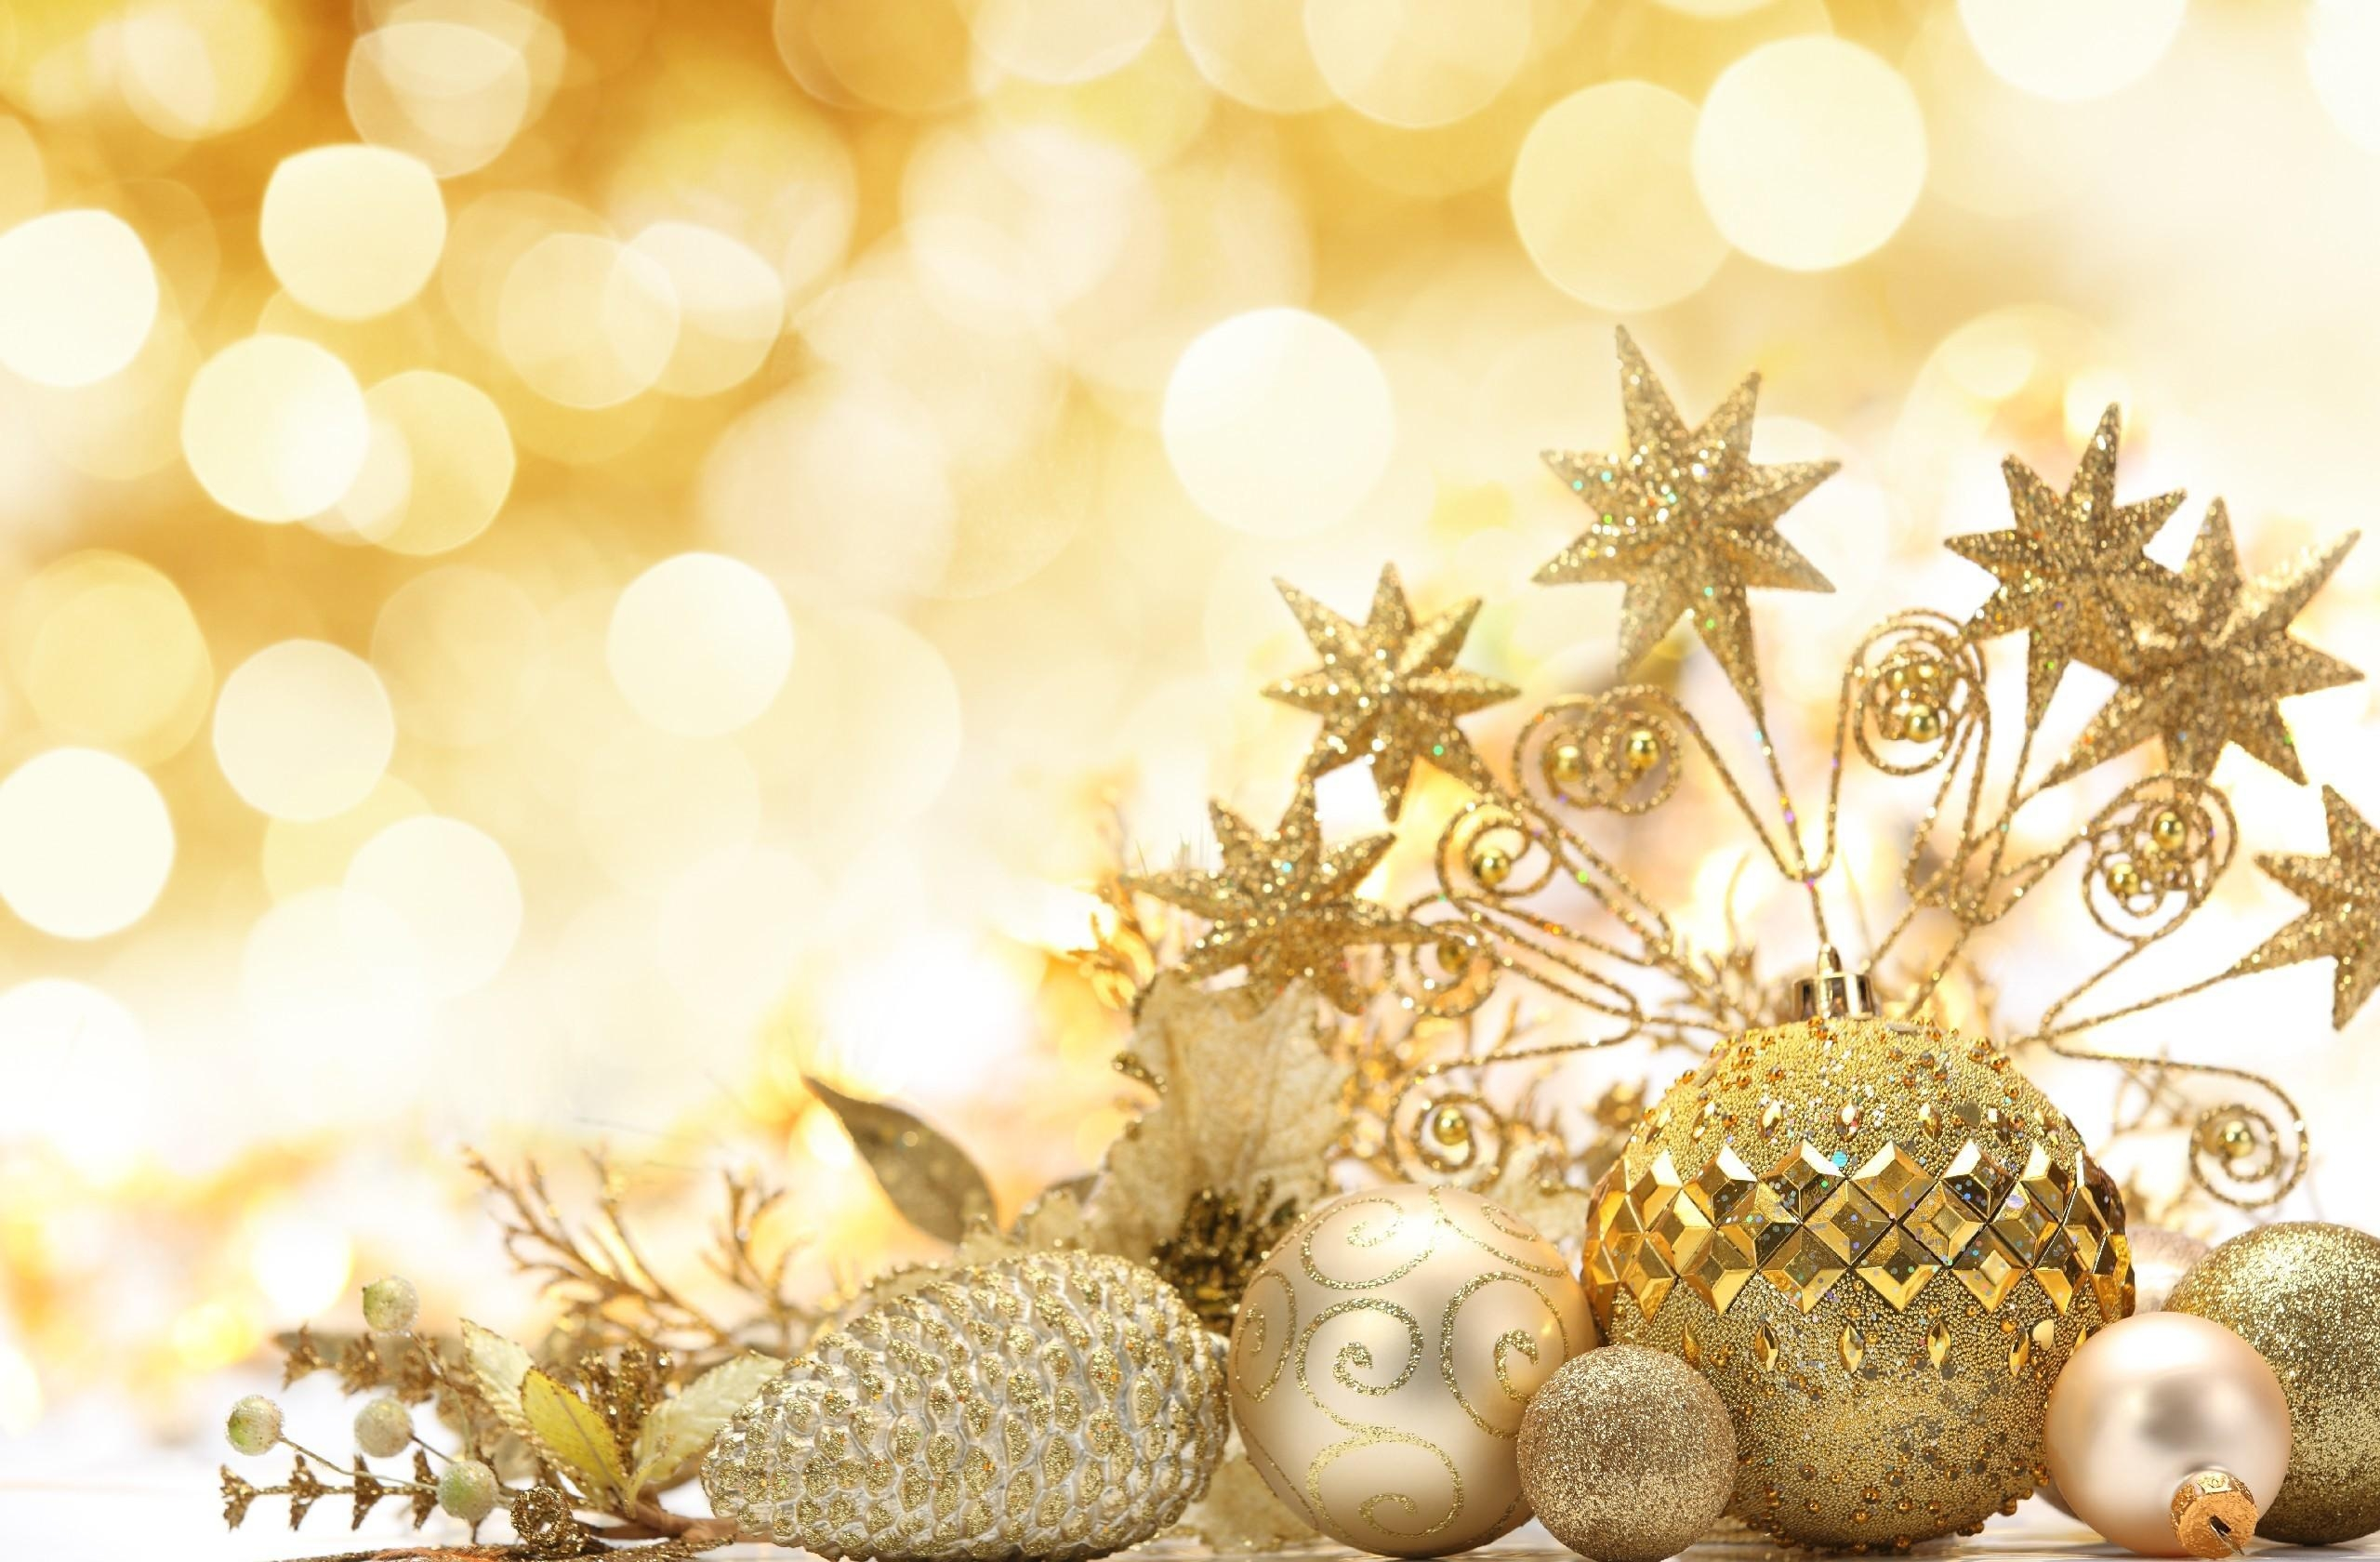 Christmas Ornament Background   Wallpapers9